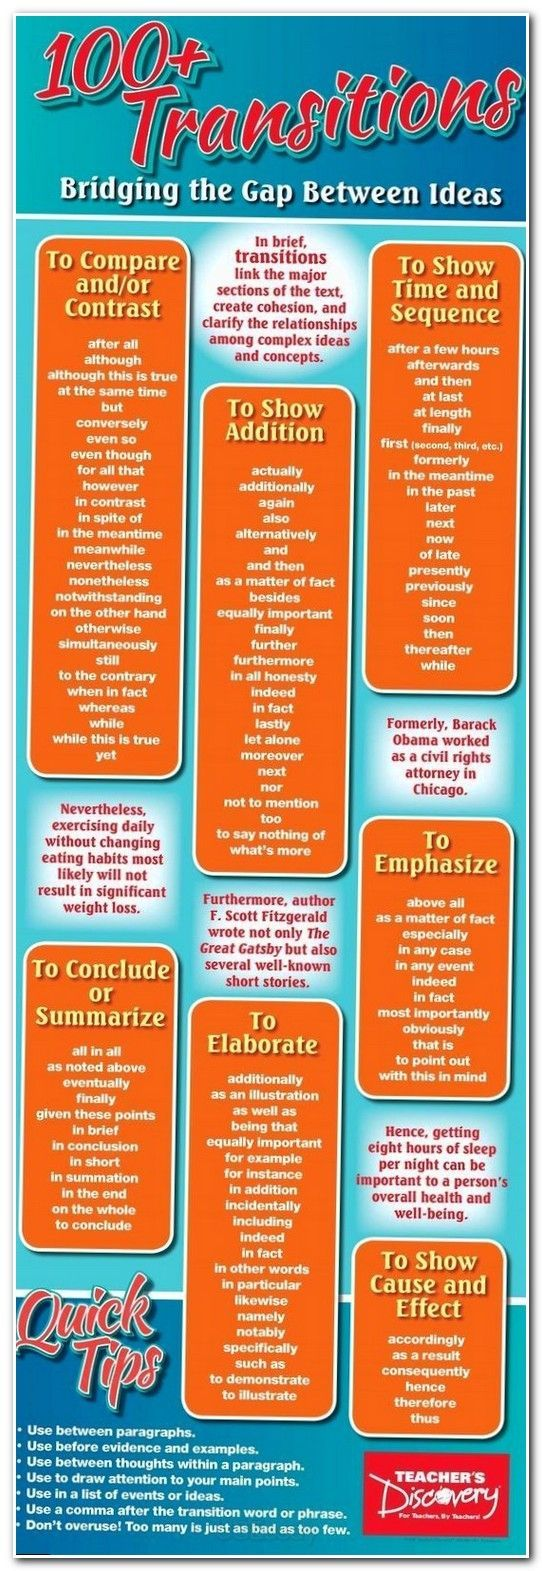 how to write a creative inference paragraph